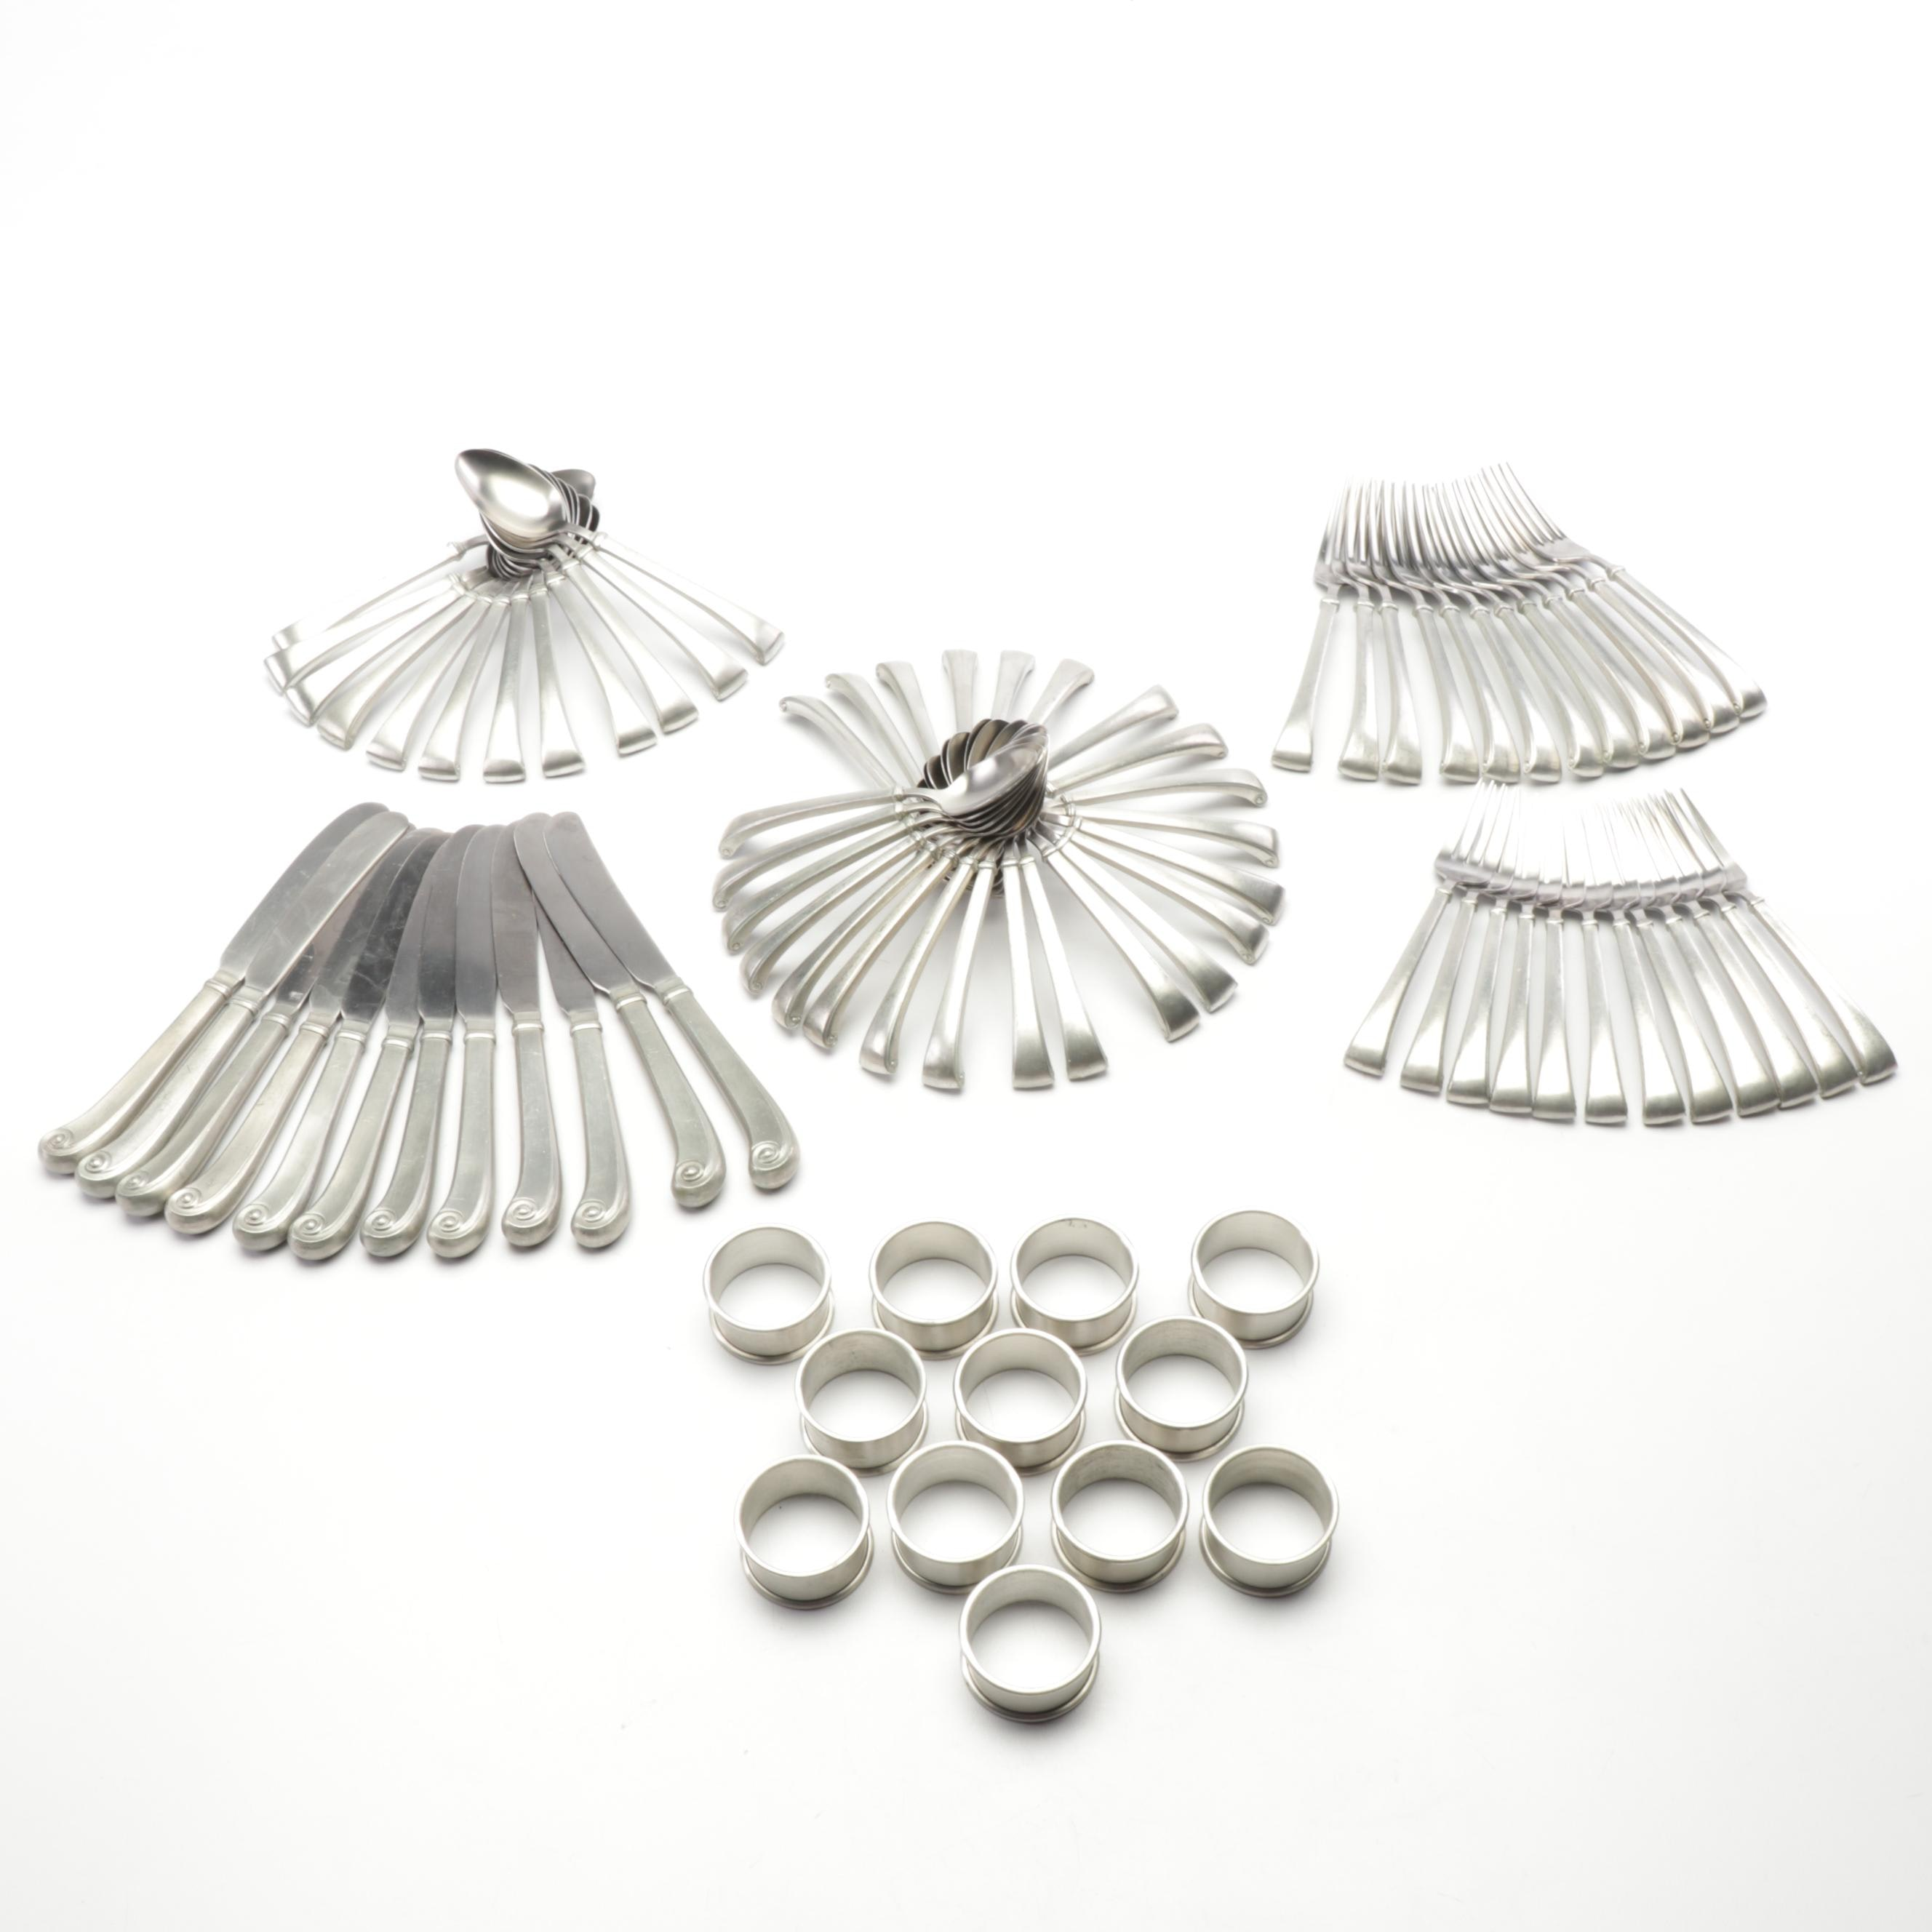 International Pewter Flatware and Napkin Bands